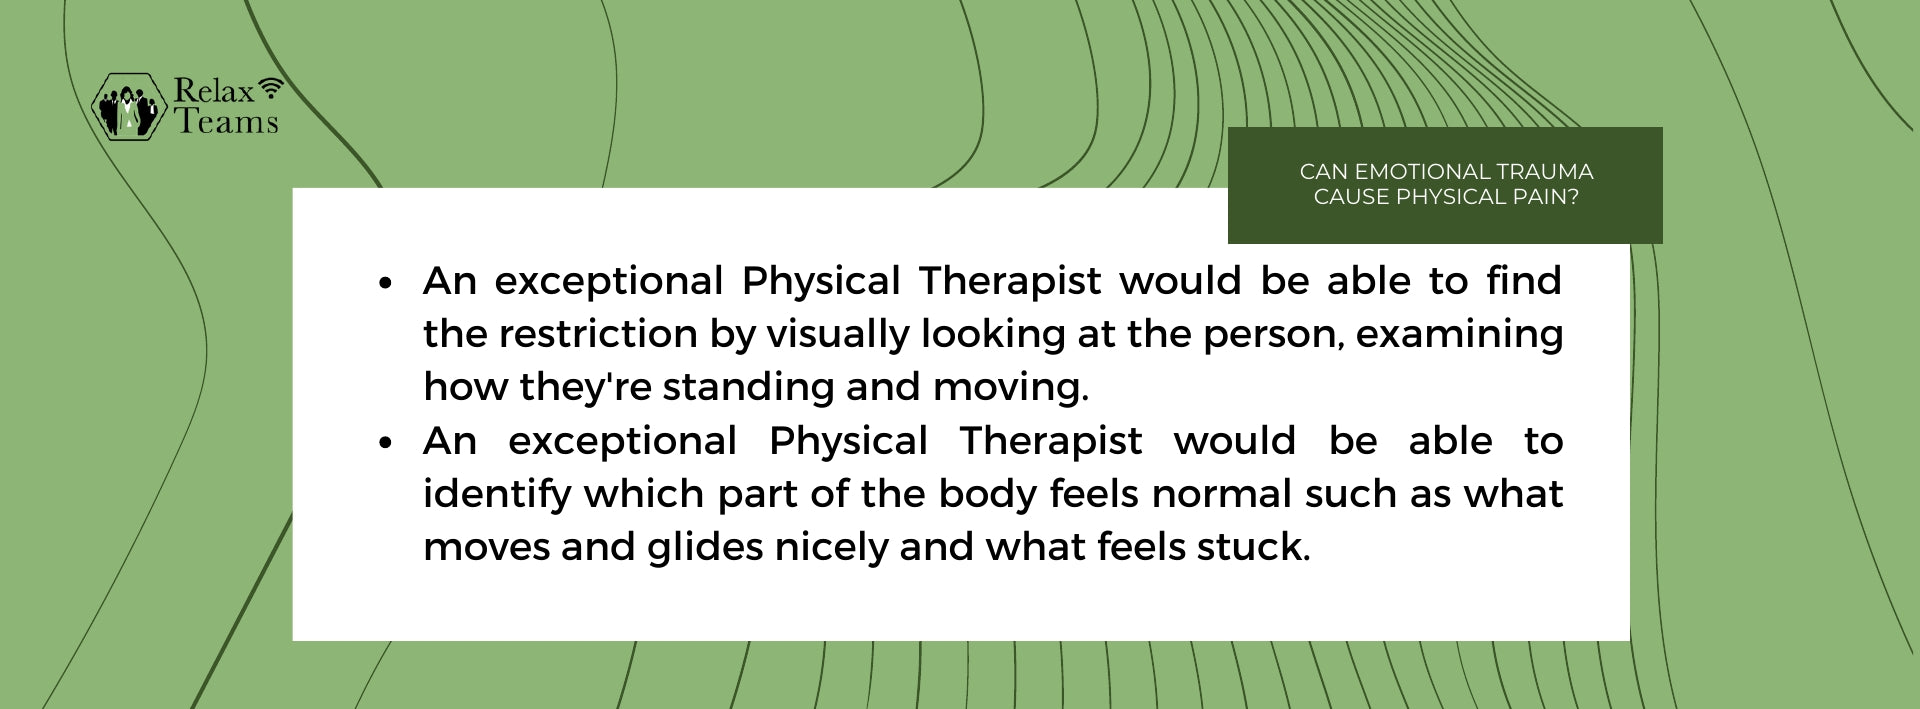 An exceptional Physical Therapist would be able to find the restriction by visually looking at the person, examining how they're standing and moving.